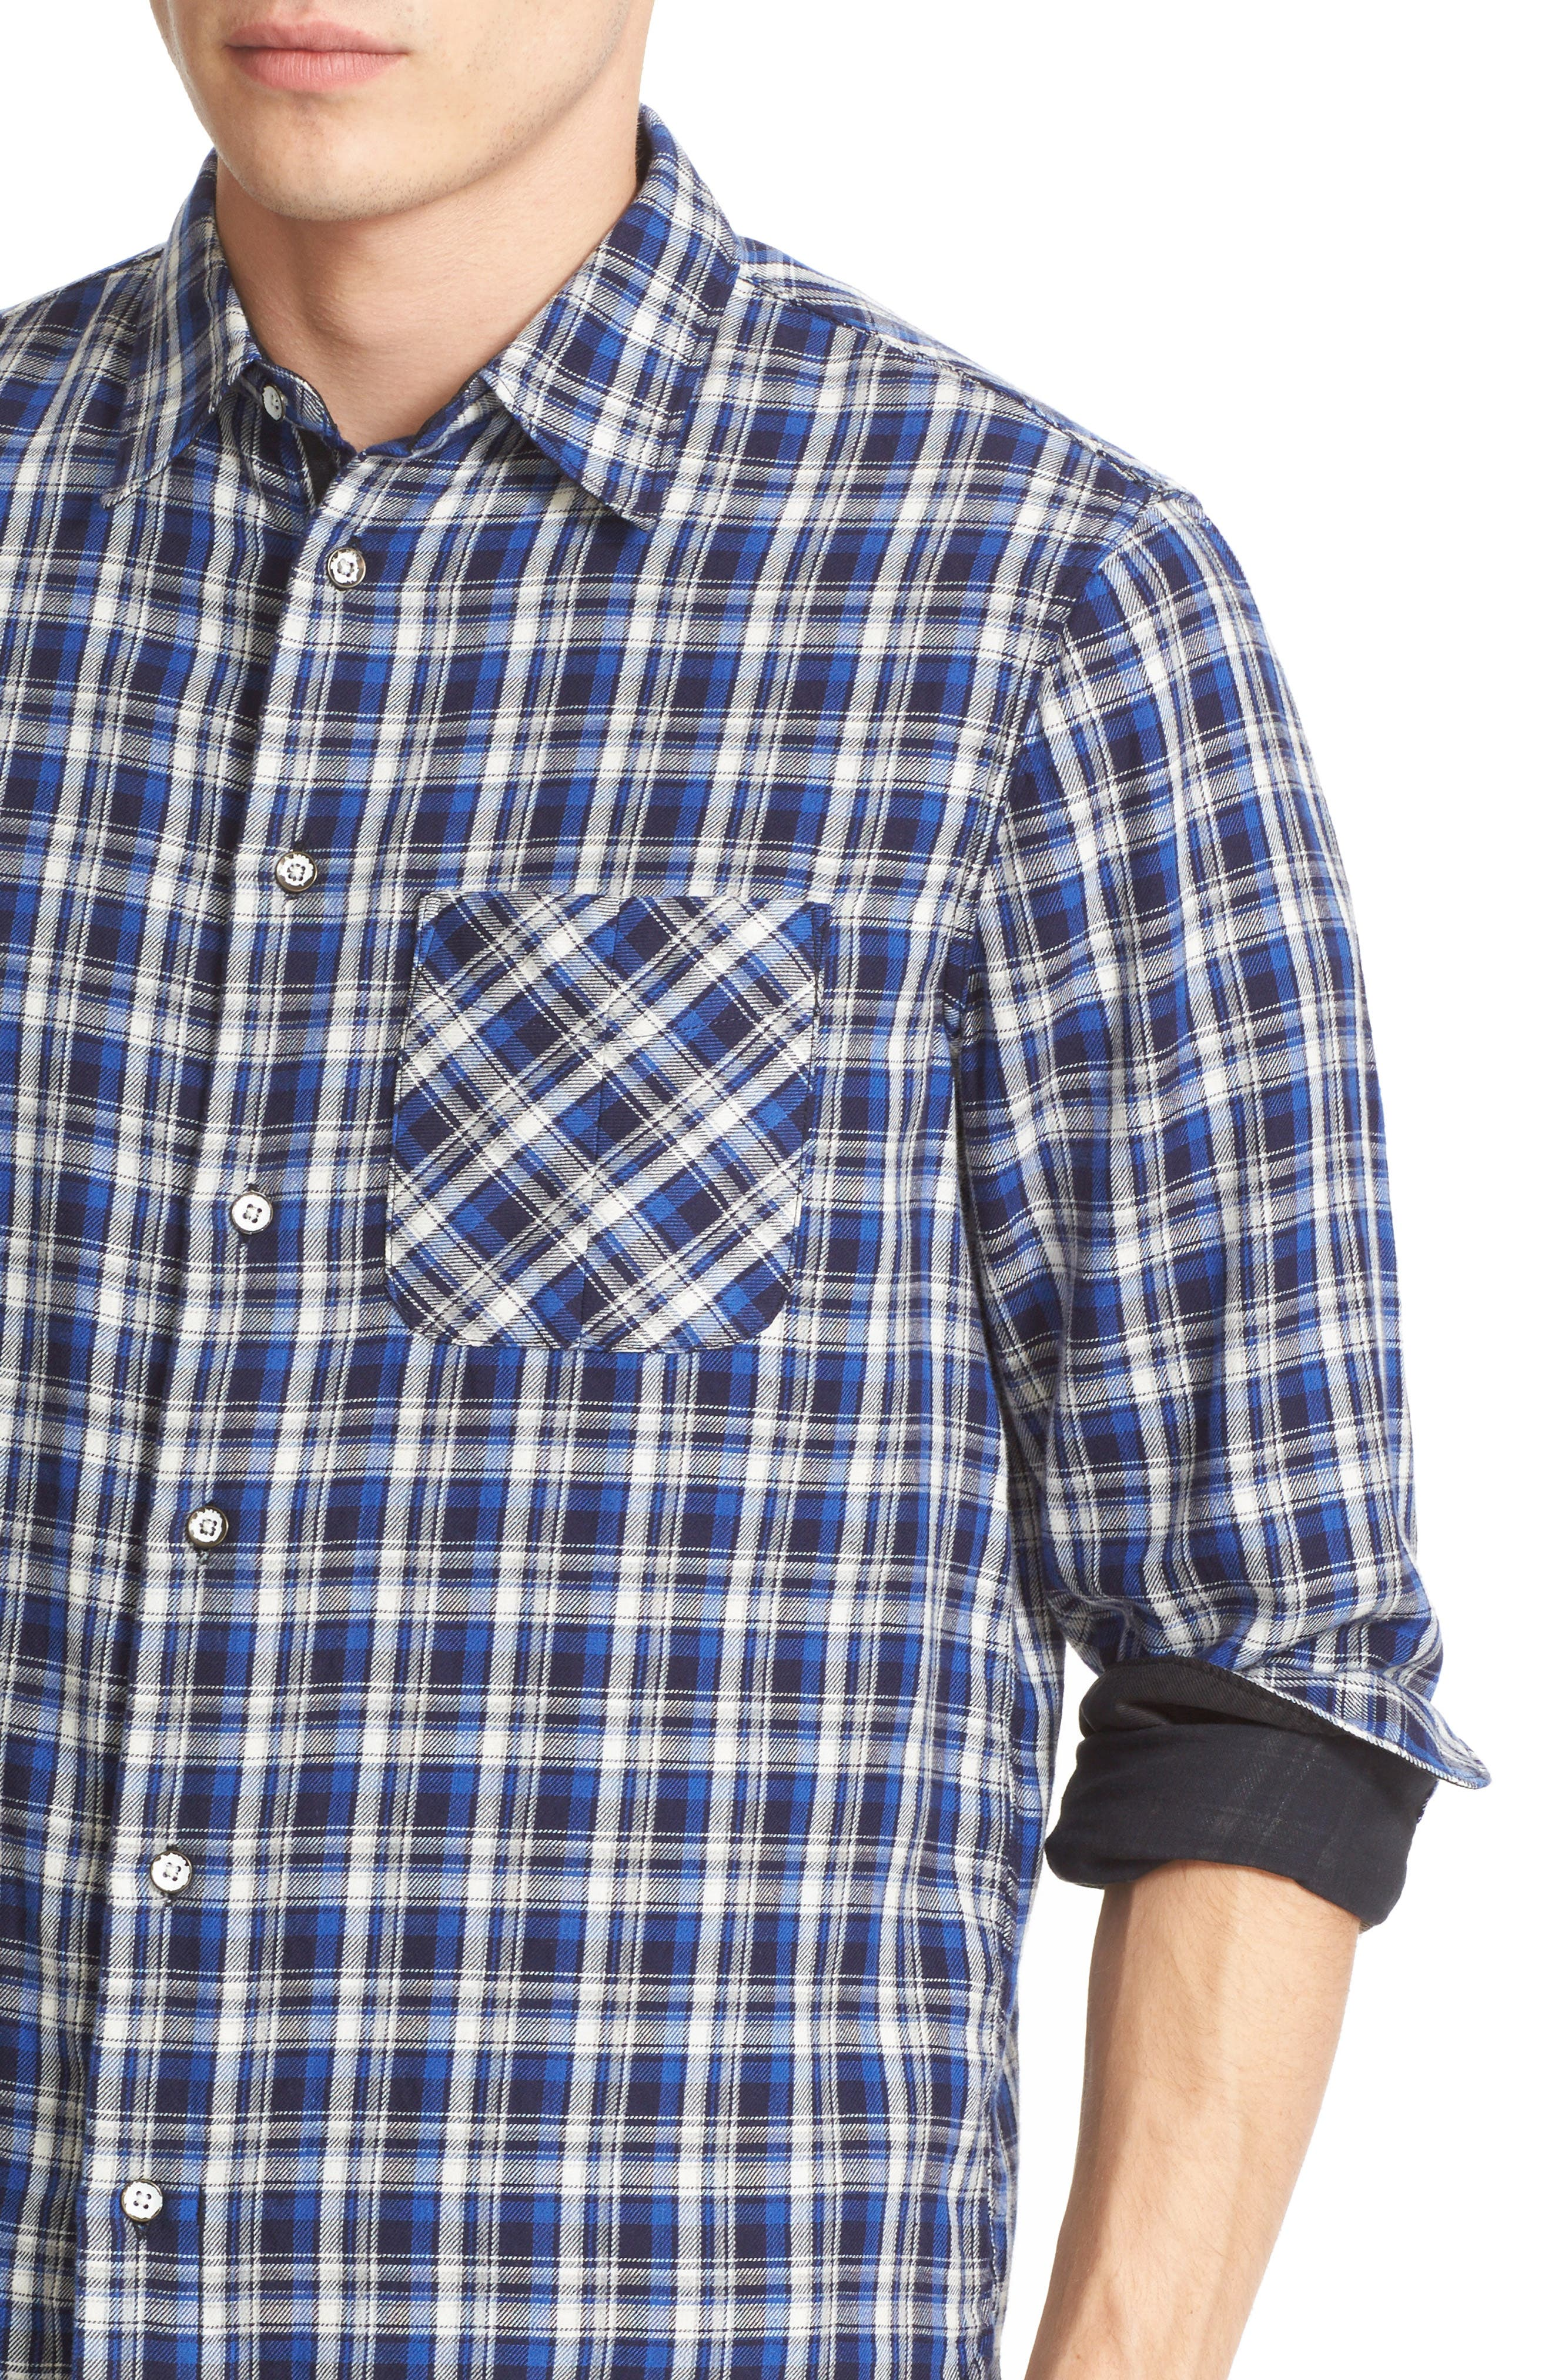 Plaid Beach Trim Fit Double Face Sport Shirt Outlet Recommend Buy Cheap 100% Authentic Get To Buy For Sale Real Sale Online Factory Outlet Cheap Price ck38BwY3Dv